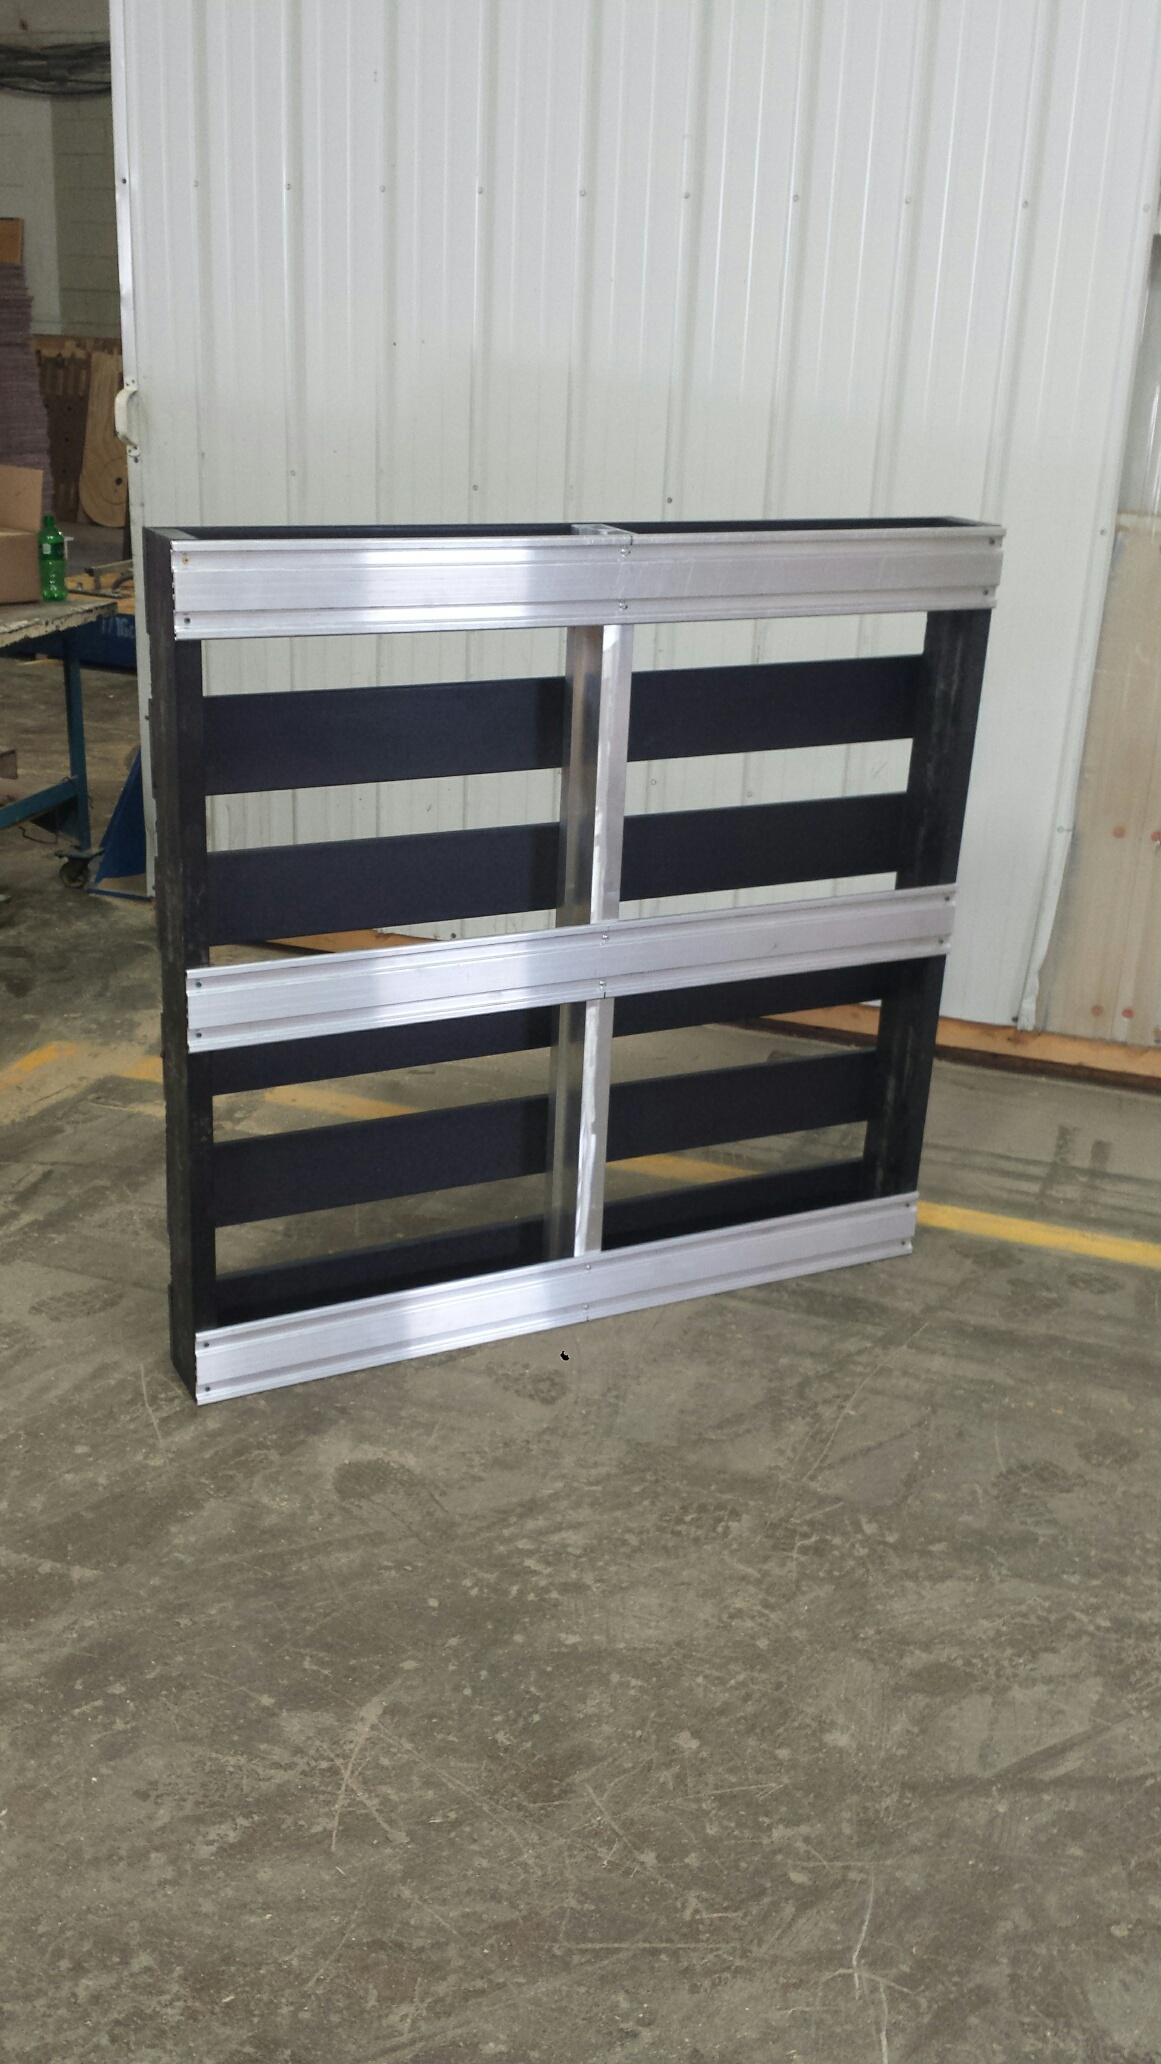 BDL Supply - custom pallets made of metal, plastic, or corrugate.